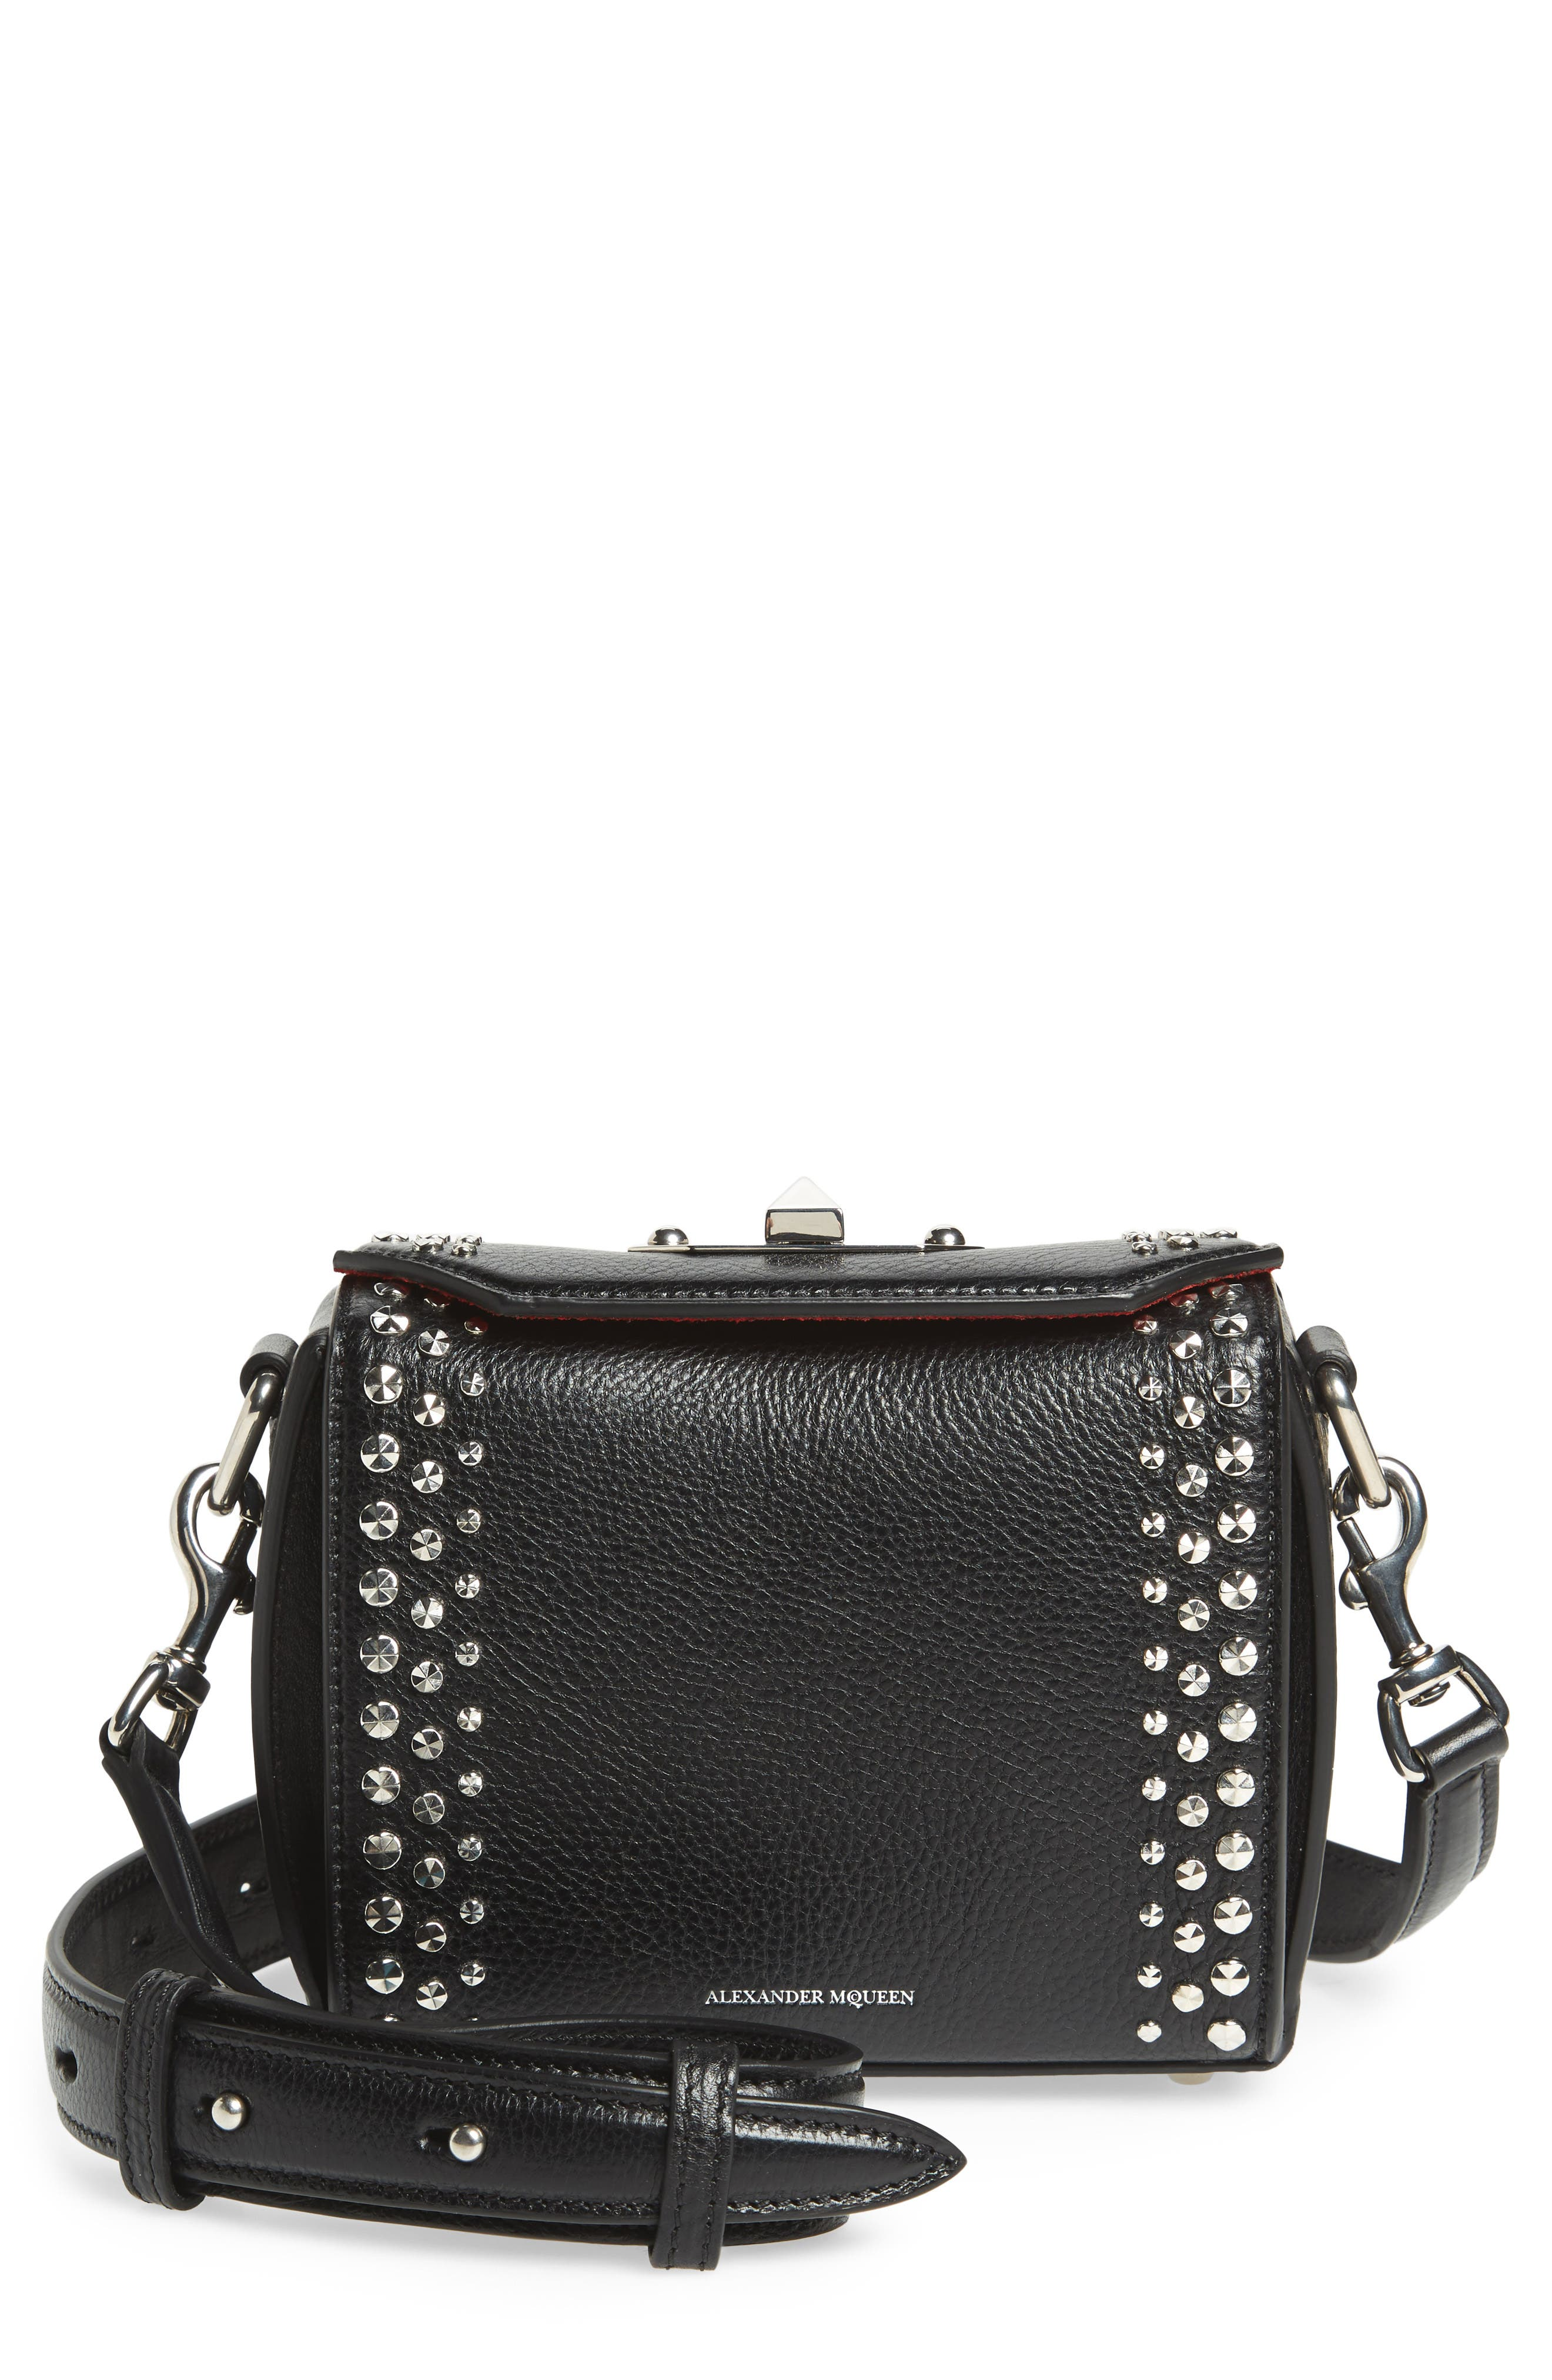 49d681cf6731a9 Alexander Mcqueen Handbags & Wallets for Women | Nordstrom